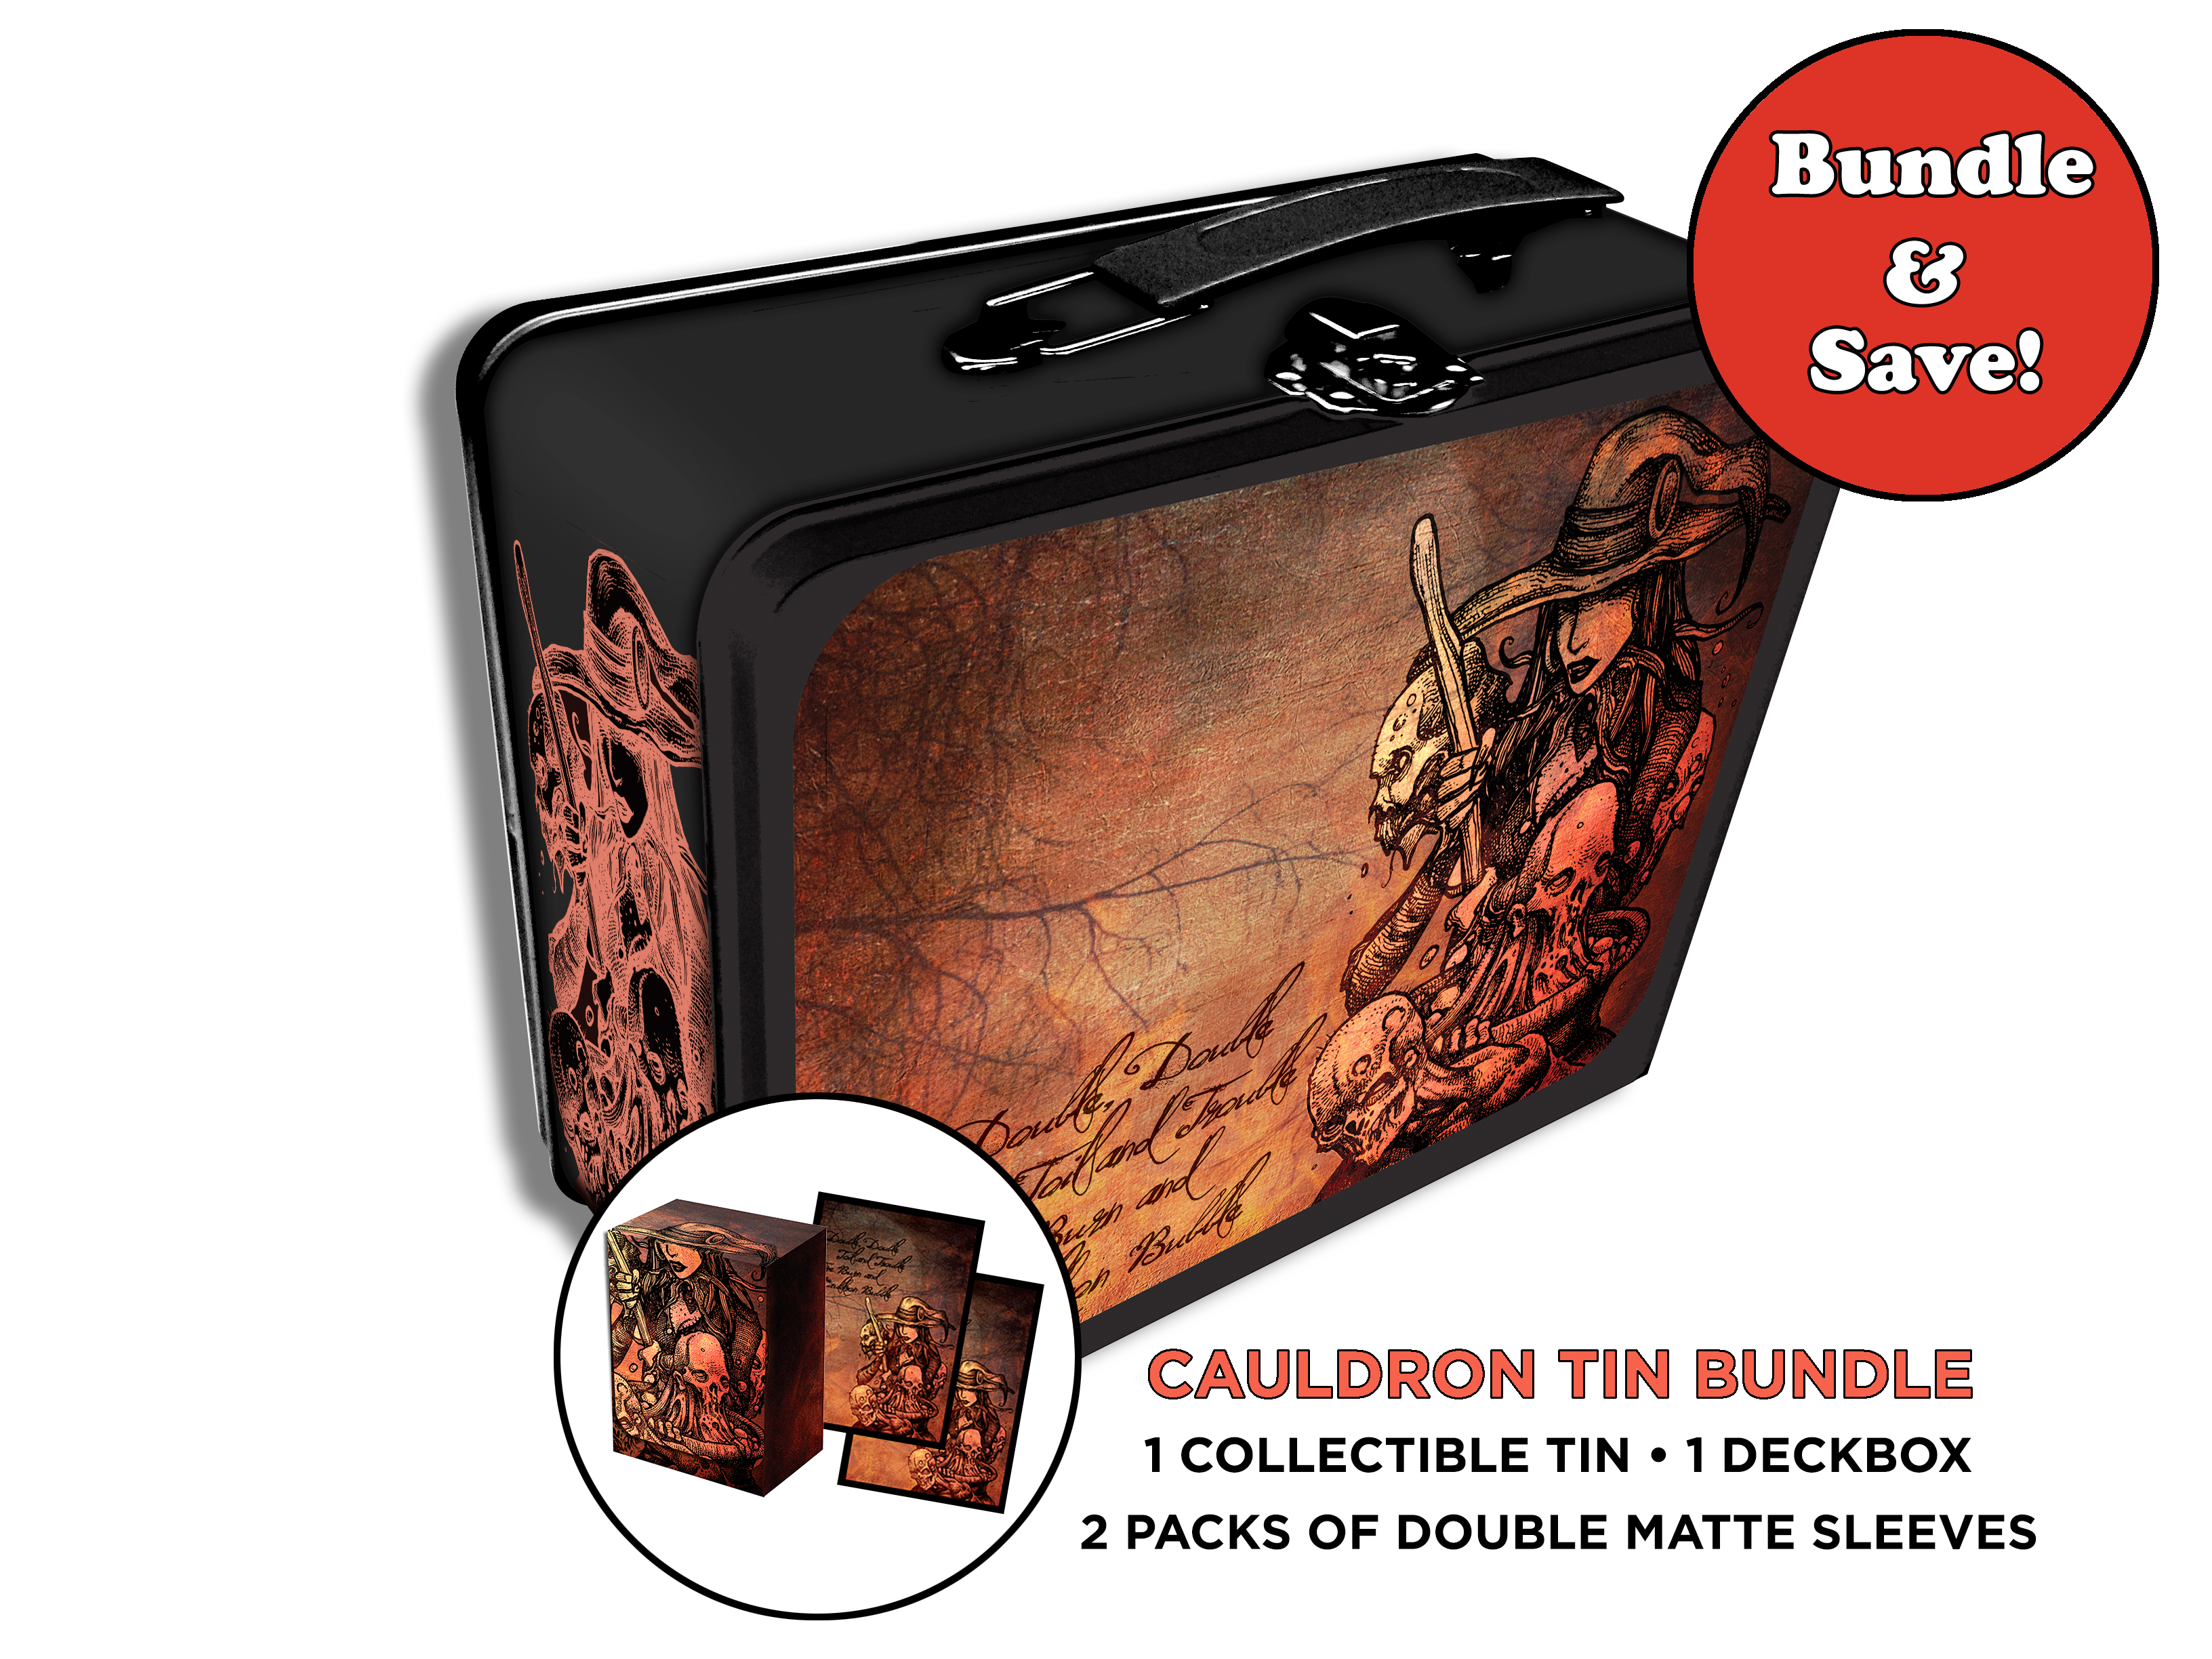 Cauldron Tin Bundle